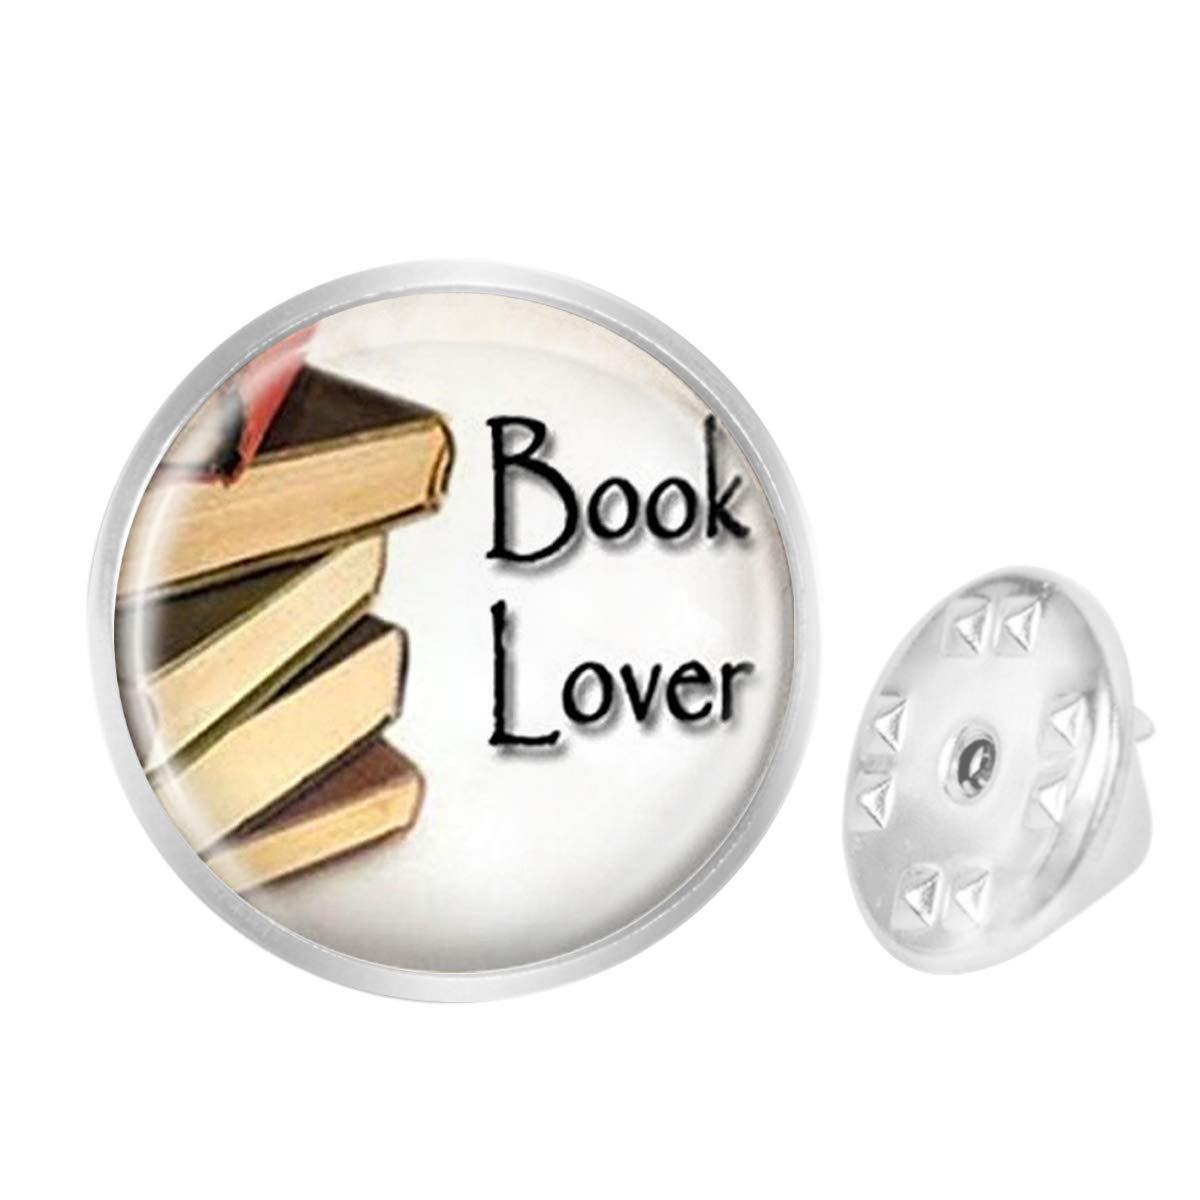 WAZZIT Round Metal Tie Tack Hat Lapel Pin Brooches Book Lover Bookworms Librarian Banquet Badge Enamel Pins Trendy Accessory Jacket T-Shirt